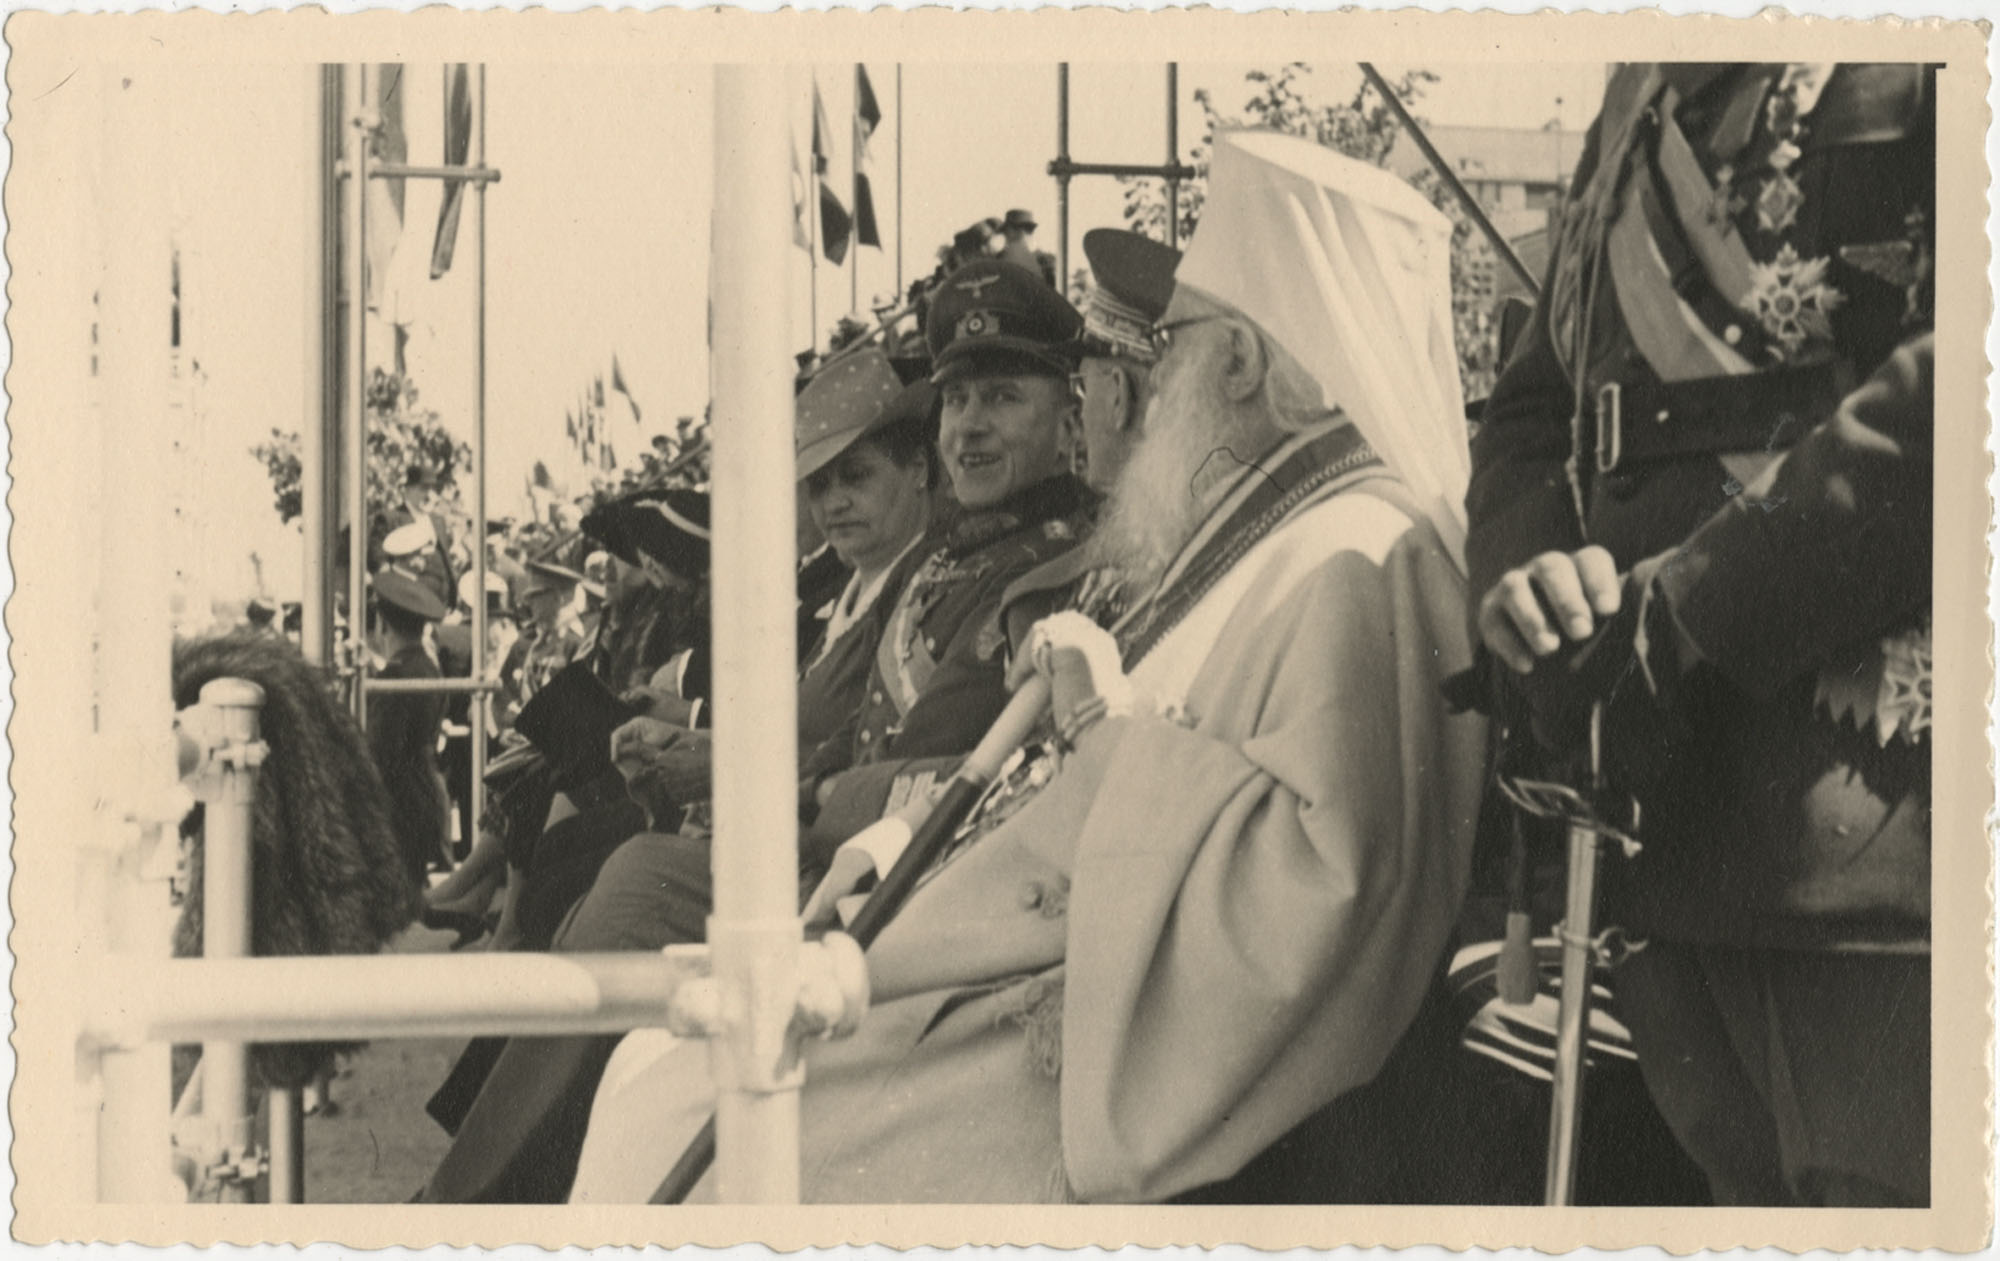 Officials observing a military ceremony, Photograph 3